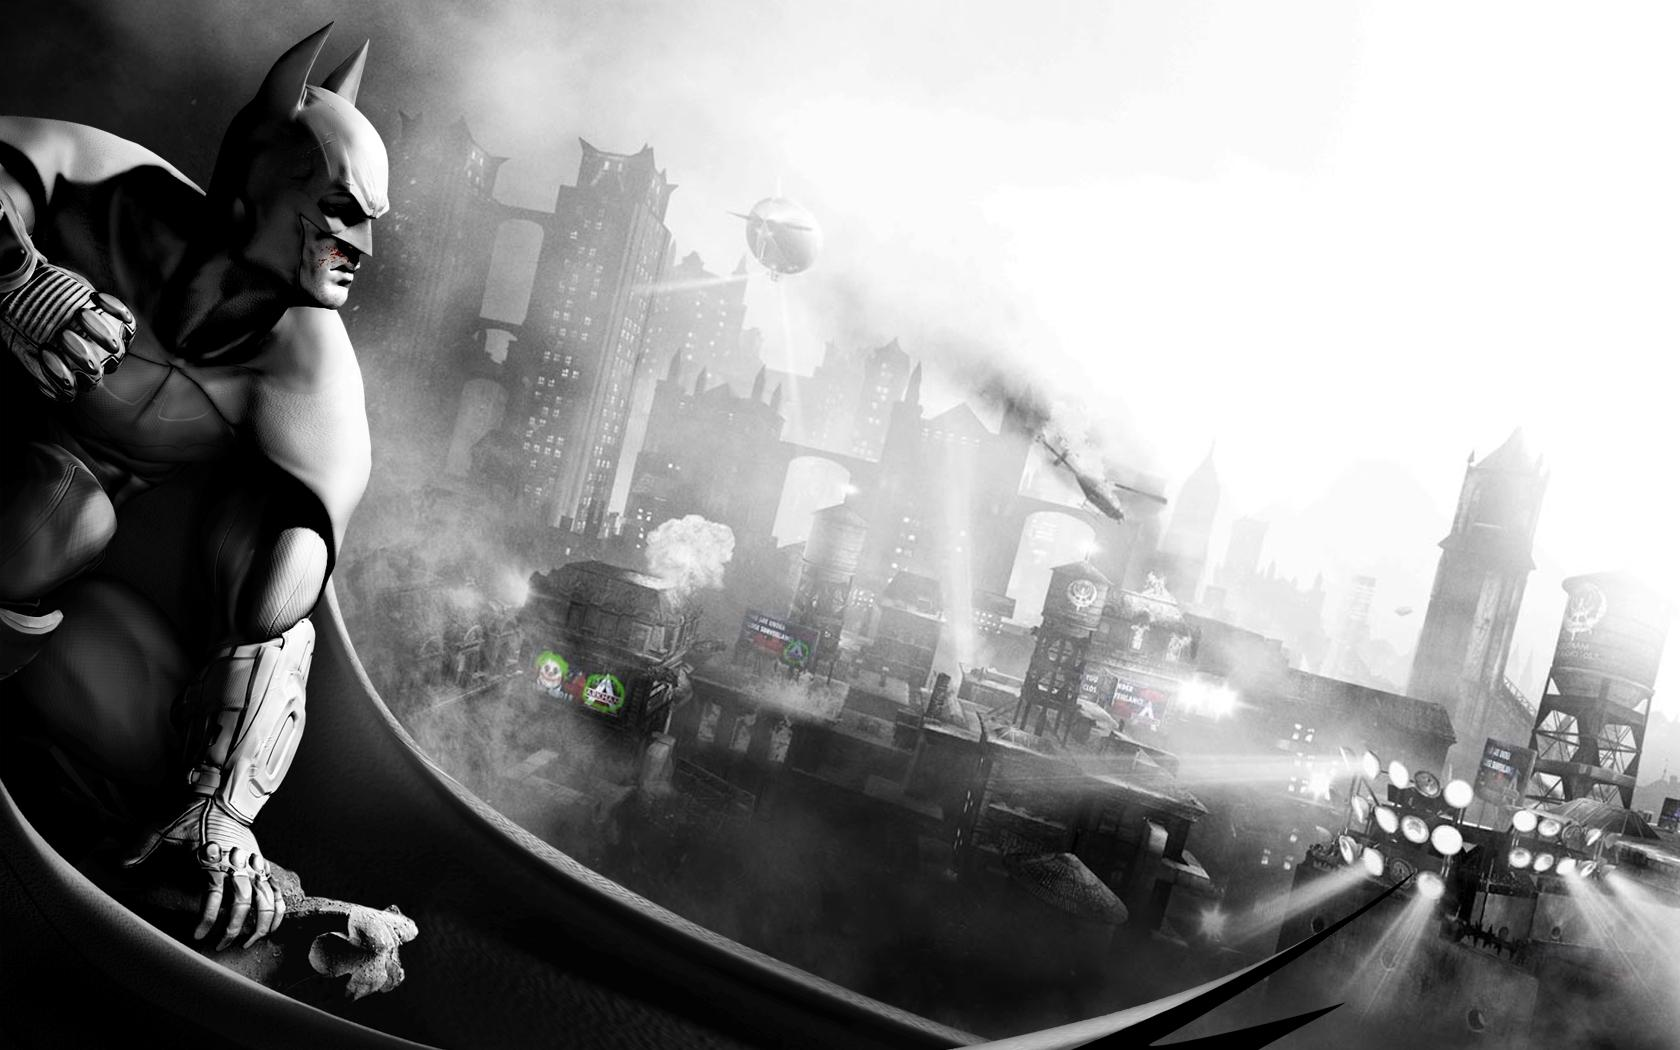 Descargar Batman Arkham City Wallpaper gratis 1680x1050